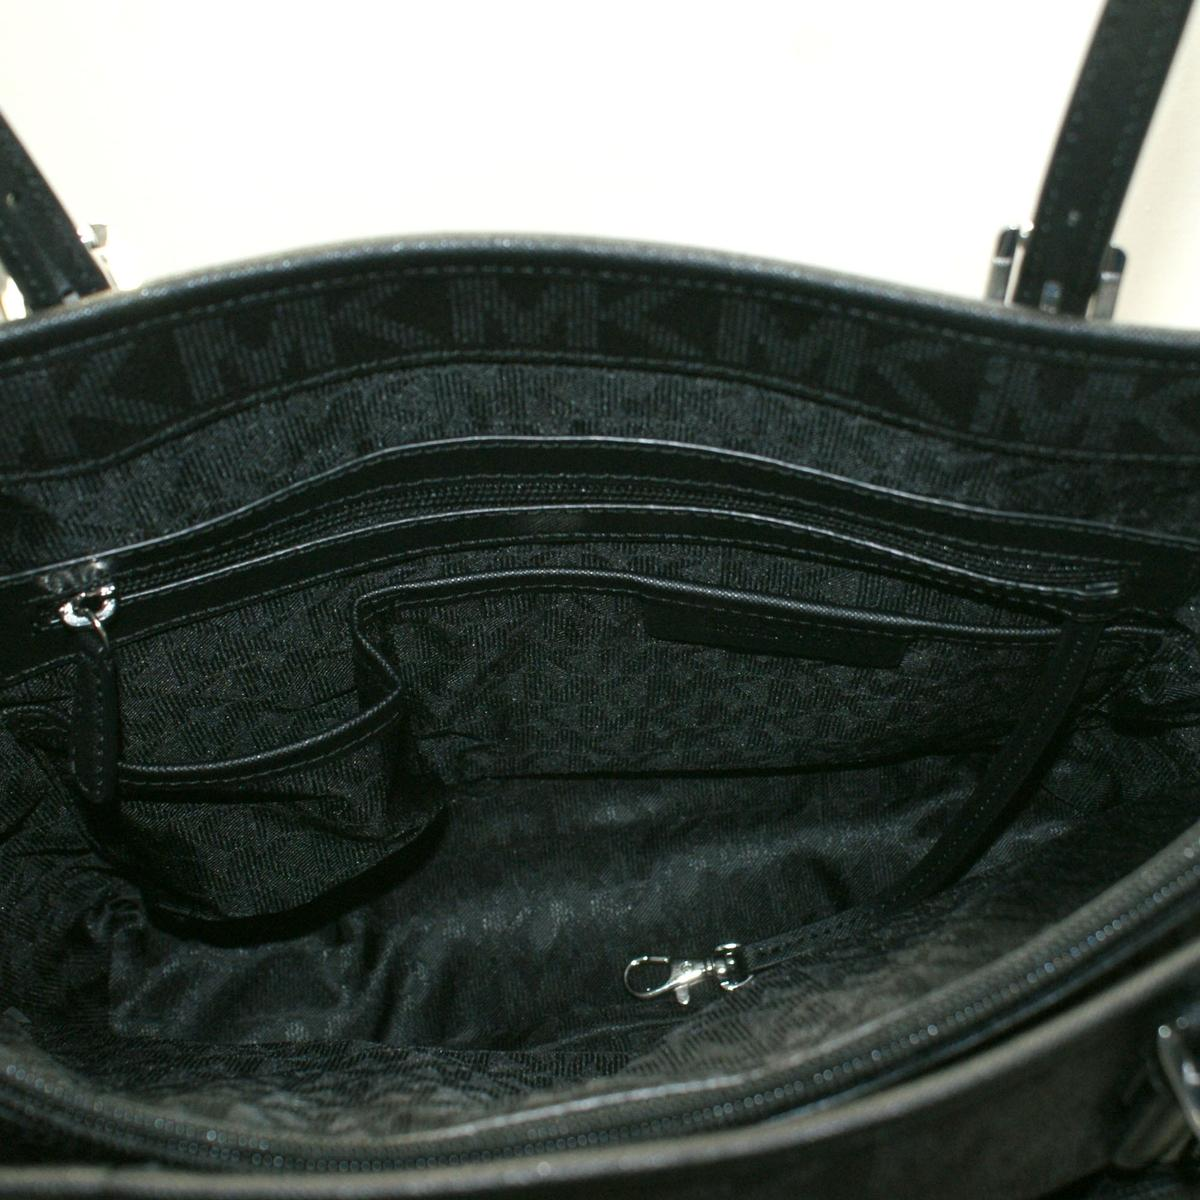 1a4b2ee68fe5 ... Jet Set Large Snap Pocket Tote Black. CLICK THUMBNAIL TO ZOOM. Found ...